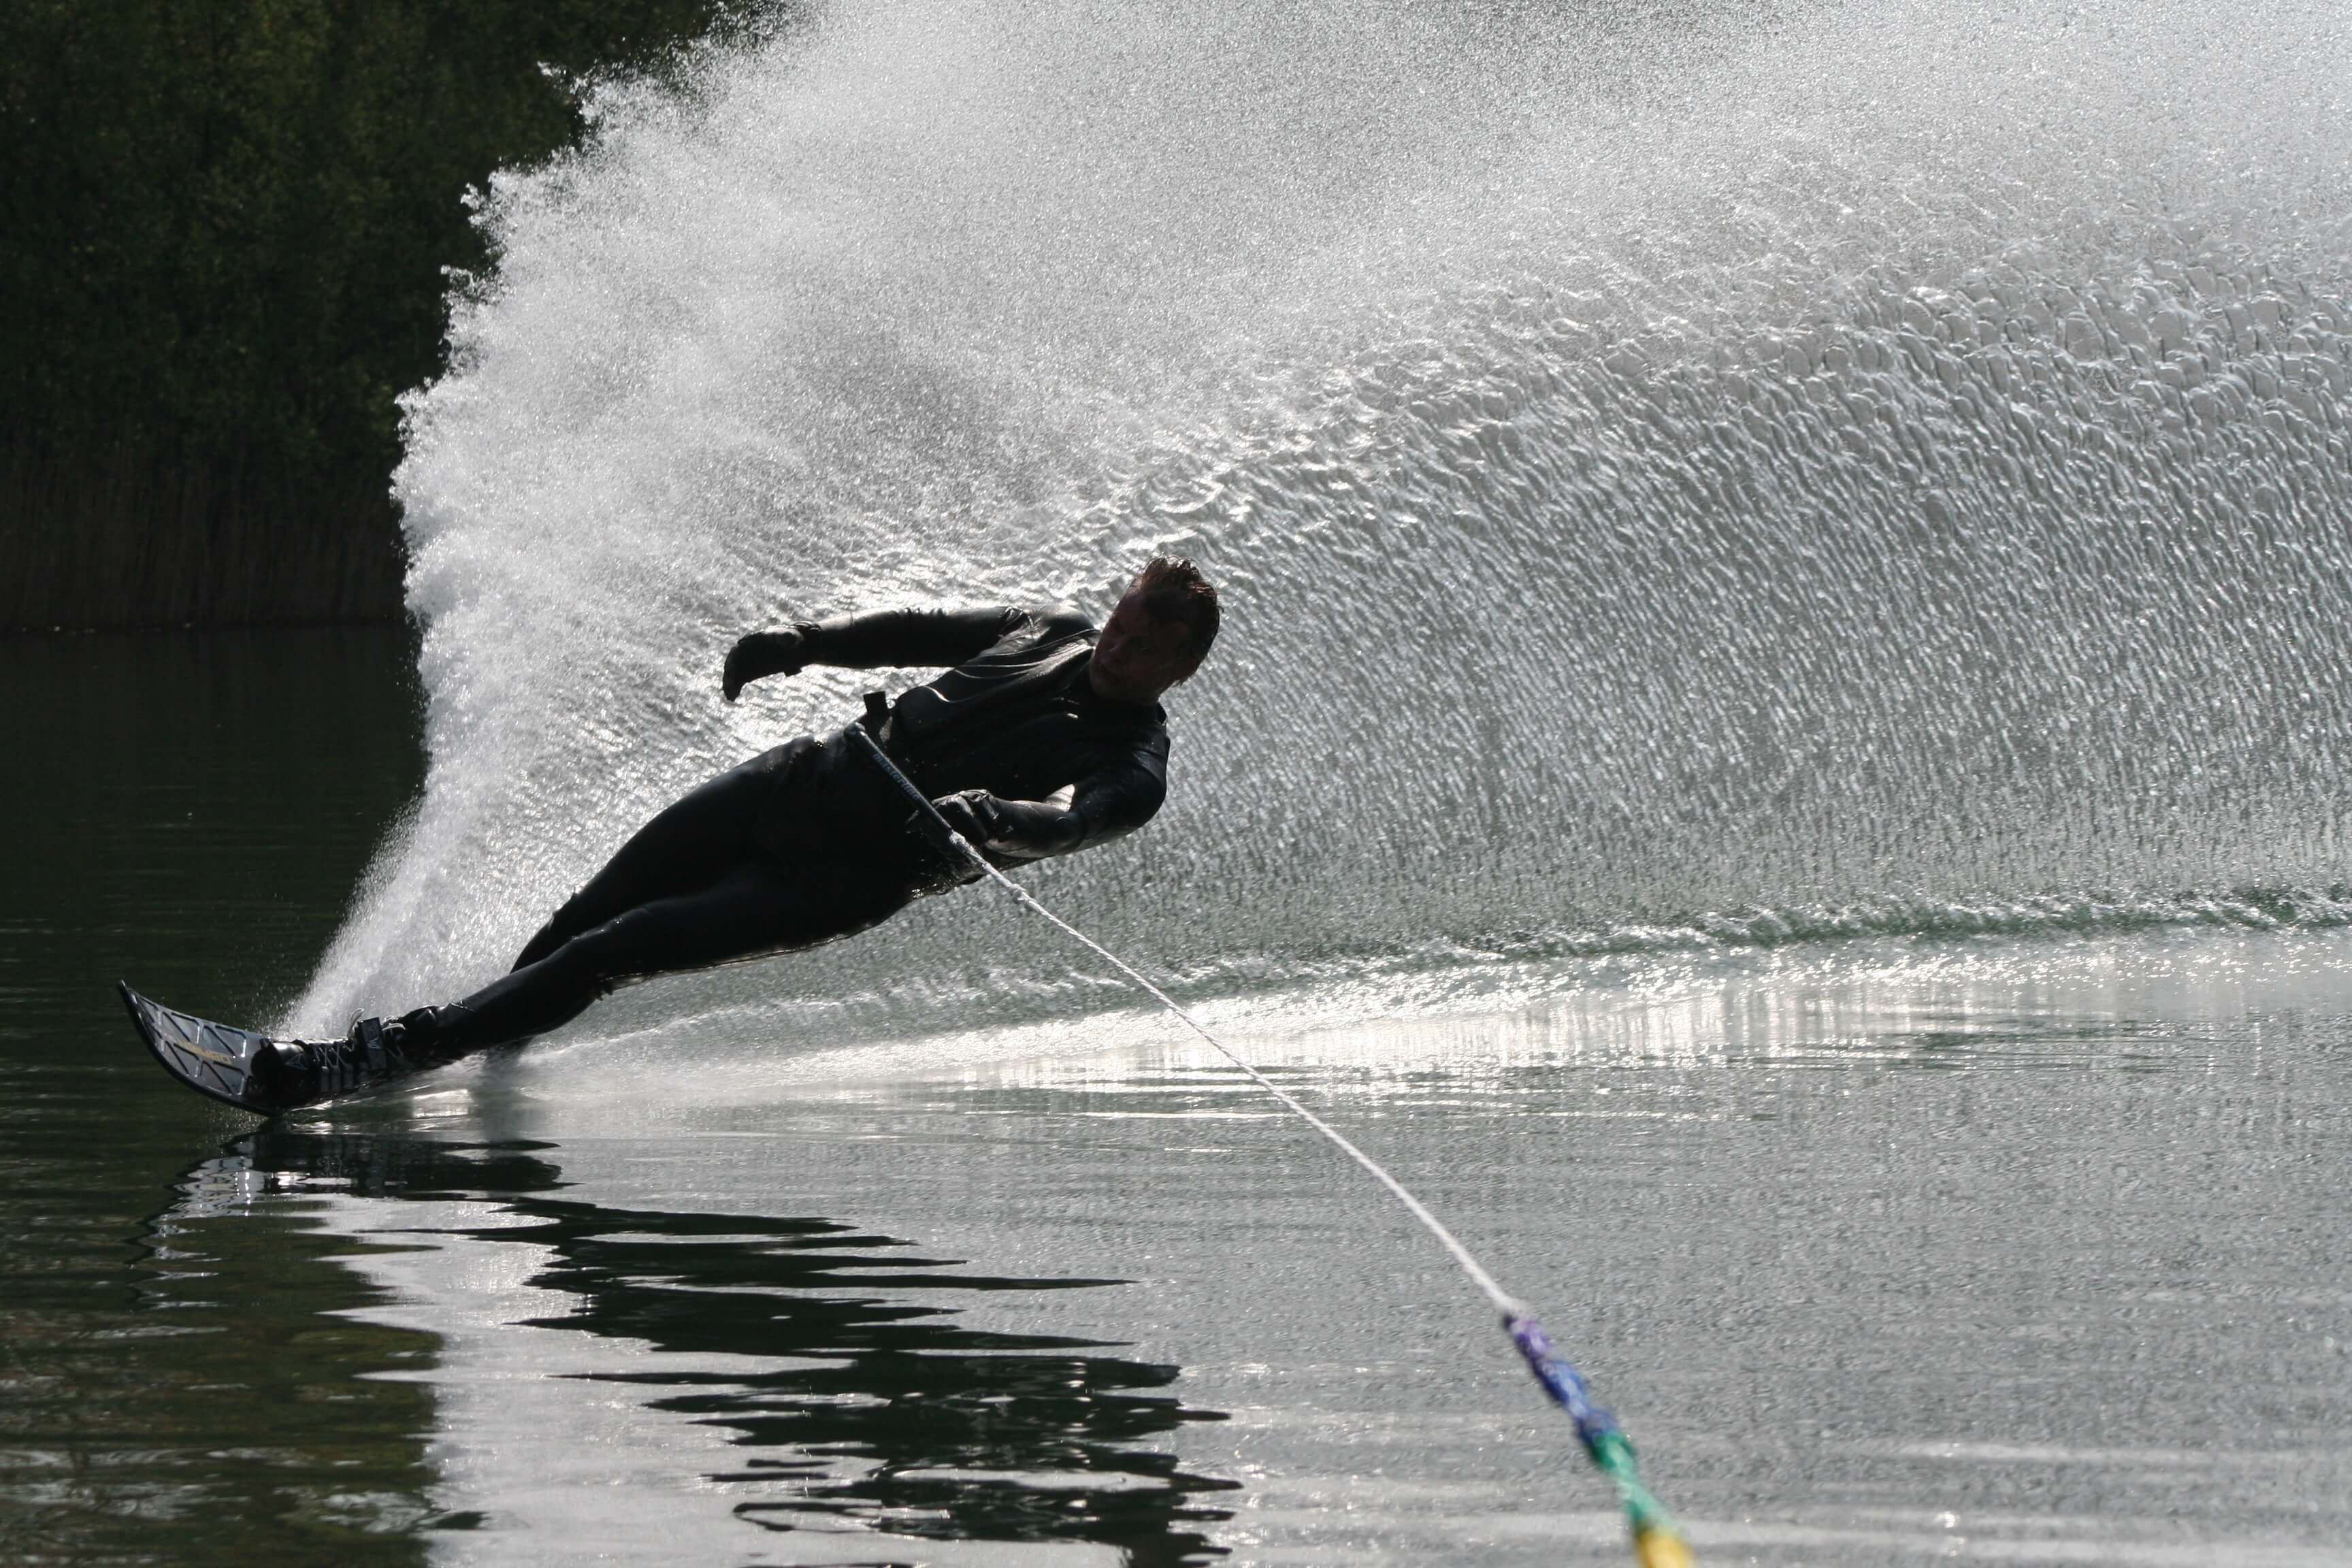 Fairford Waterski Club Salom Skiing